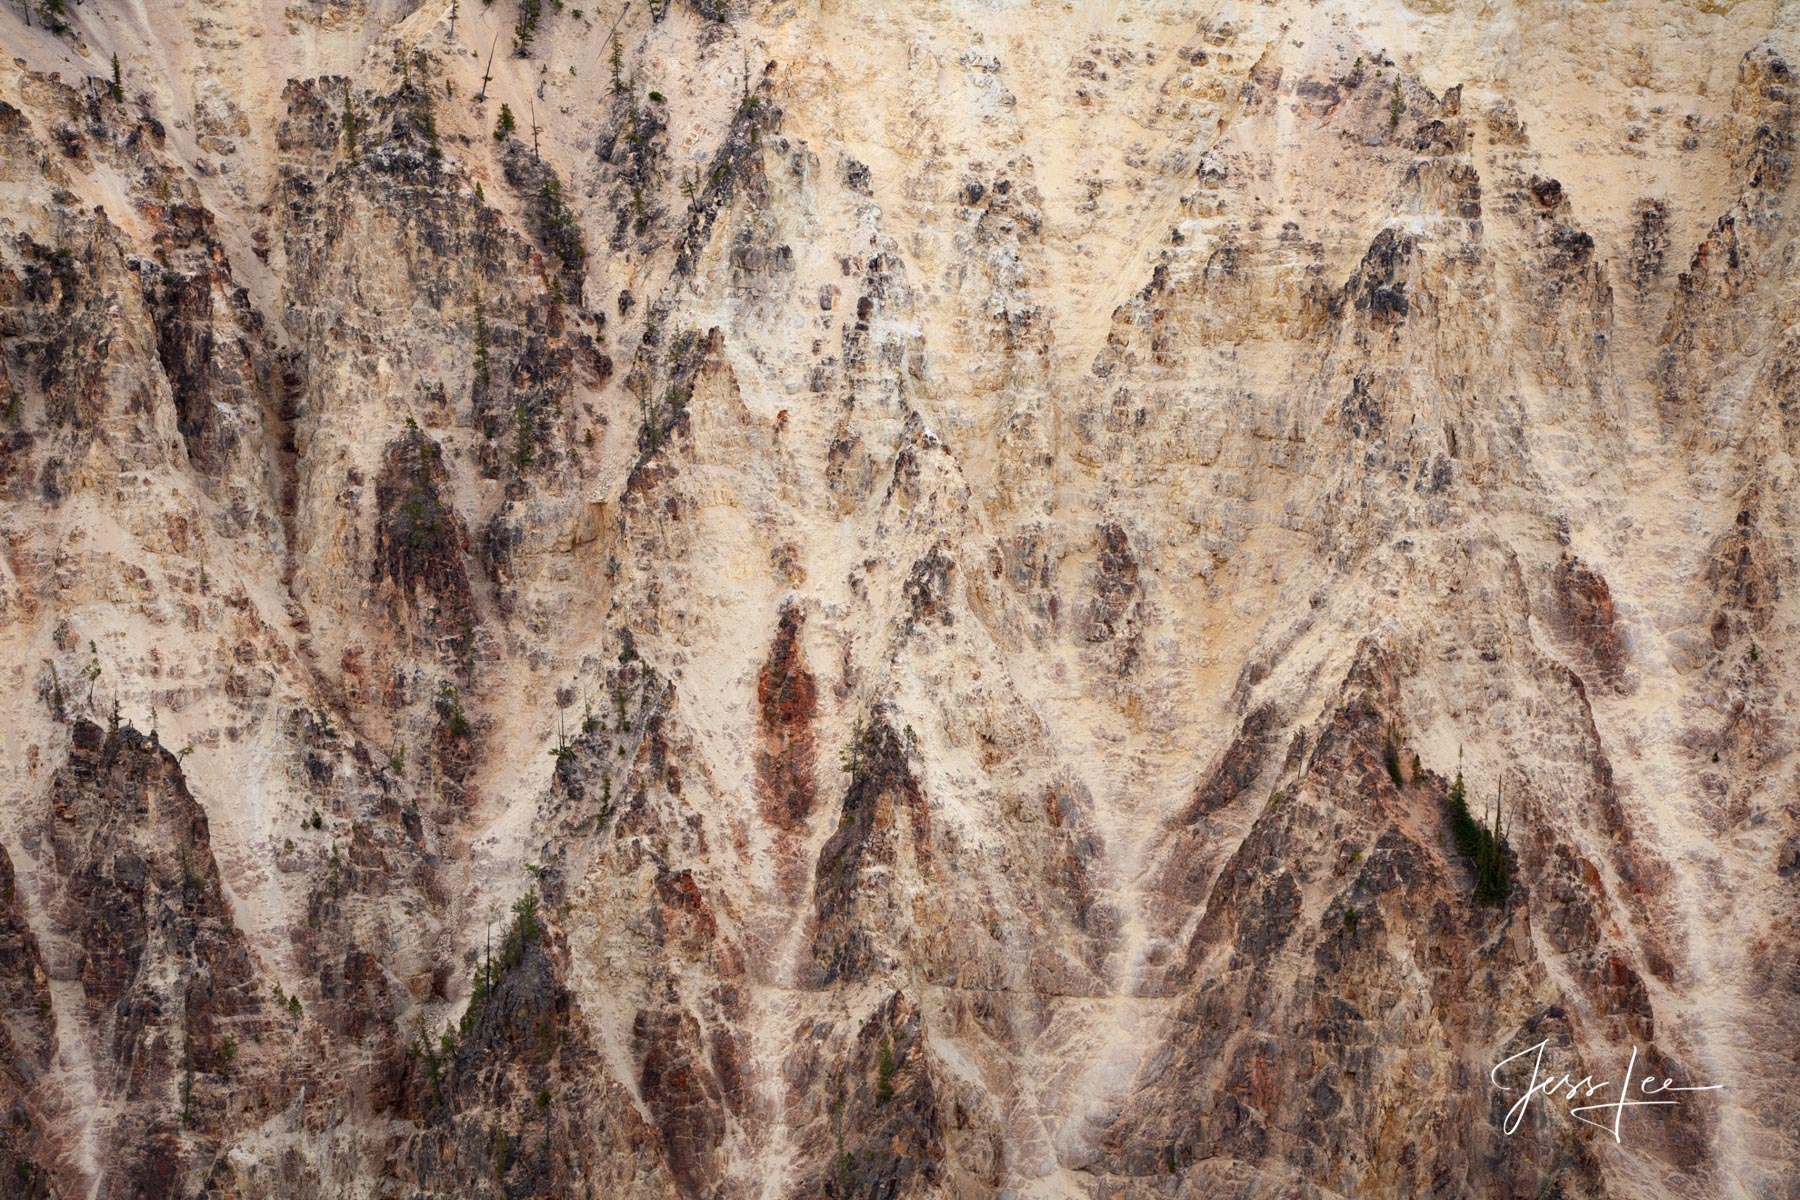 Limited Edition of 50 Exclusive high-resolution Museum Quality Fine Art Prints of Abstract Canyon Wall Photography. Photos Copyright...